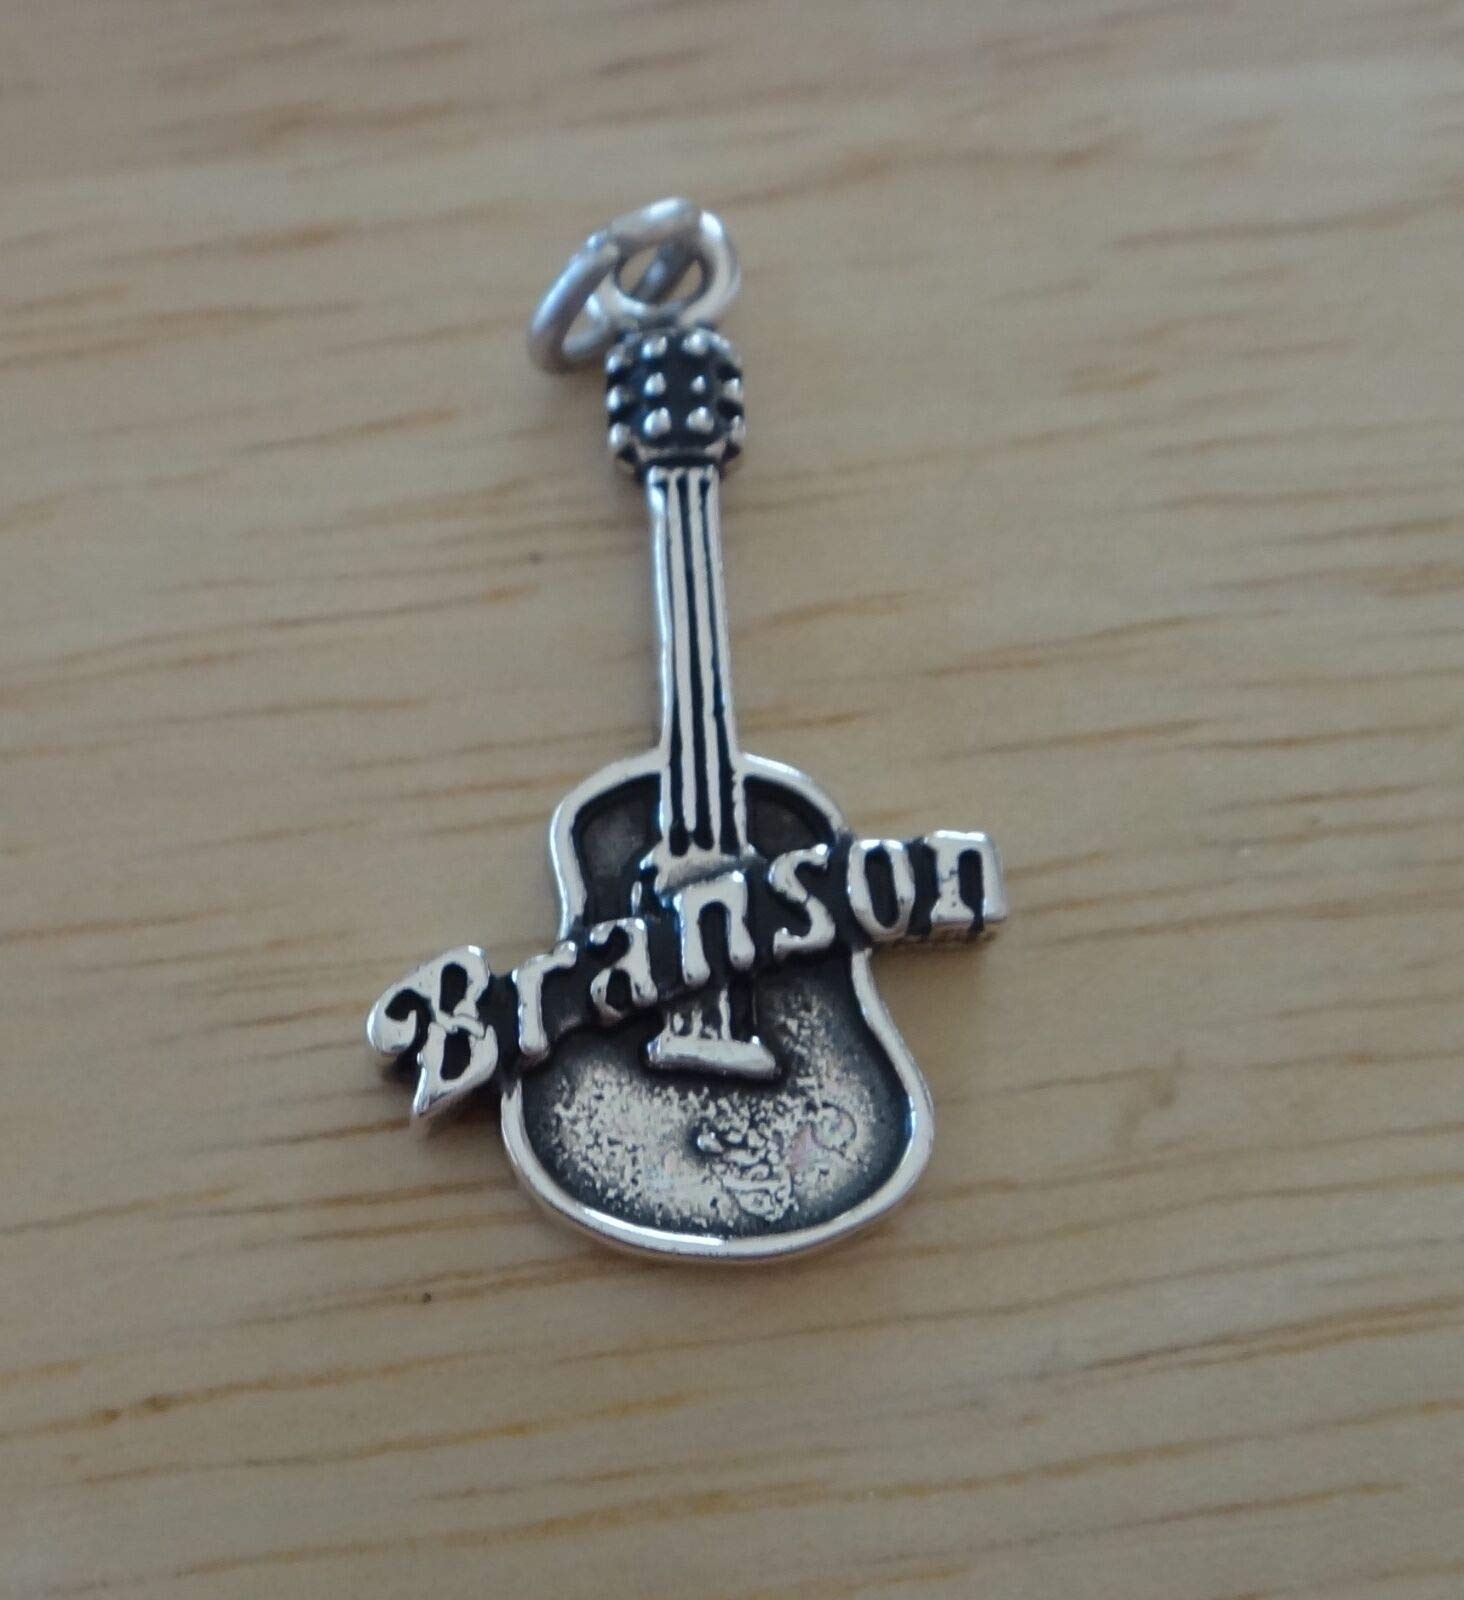 Sterling Silver 26x15mm Guitar That says Branson Missouri Charm Jewelry Making Supply, Pendant, Sterling Charm, Bracelet, Beads, DIY Crafting and Other by Wholesale Charms